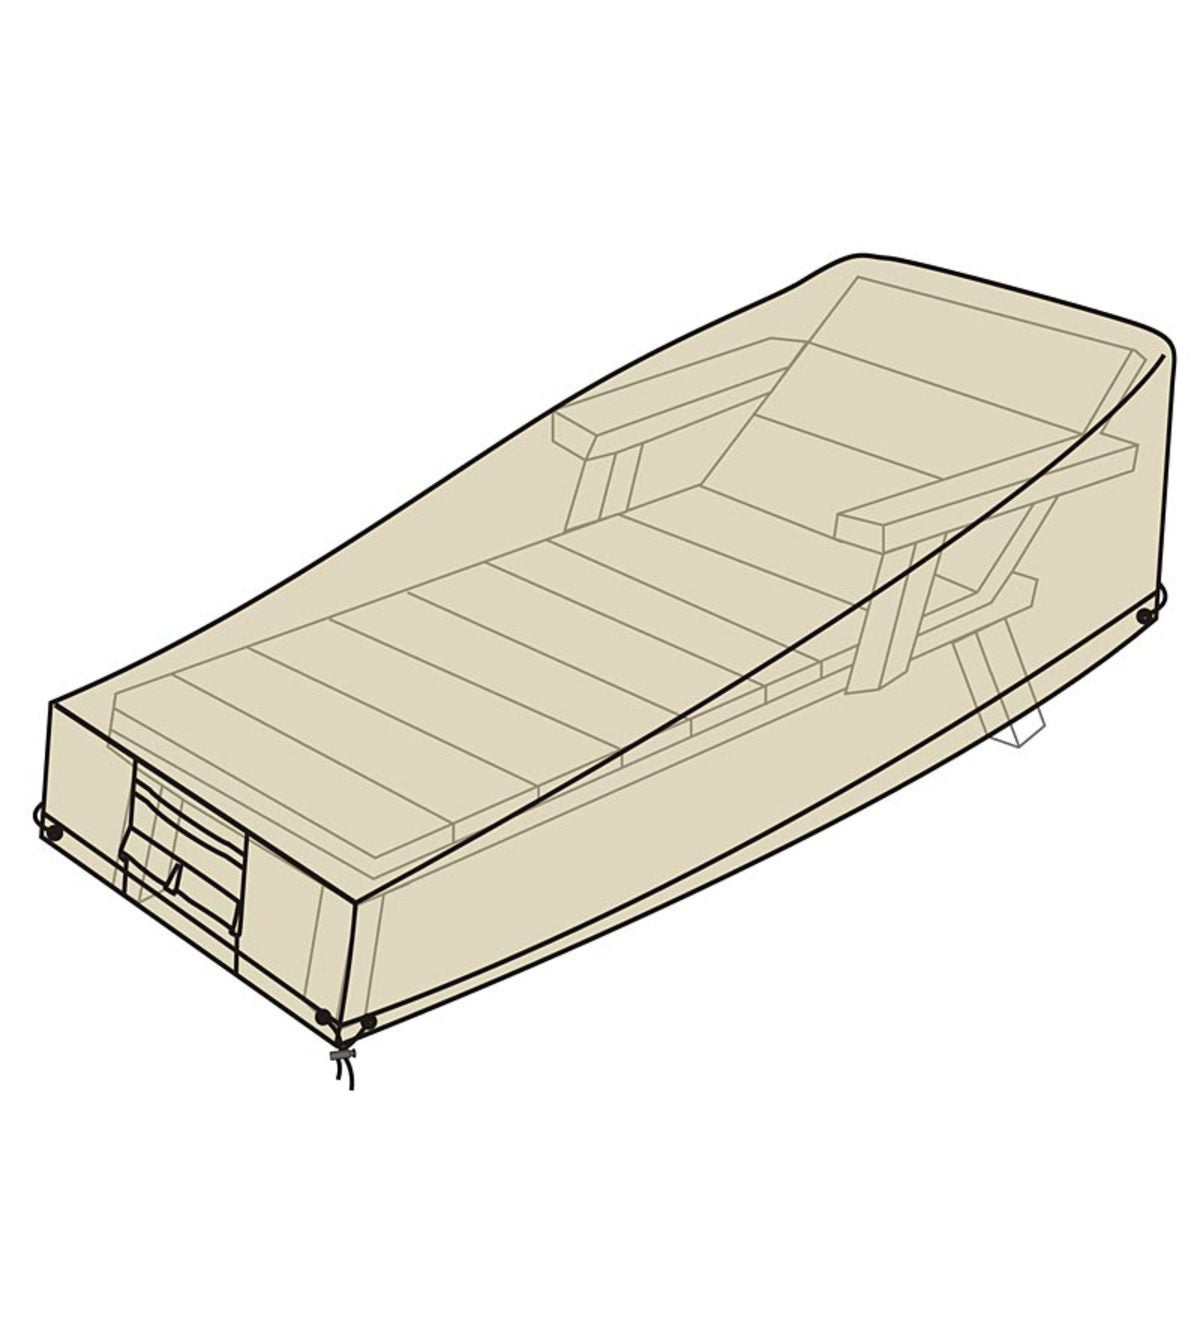 Deluxe Chaise Cover - Tan